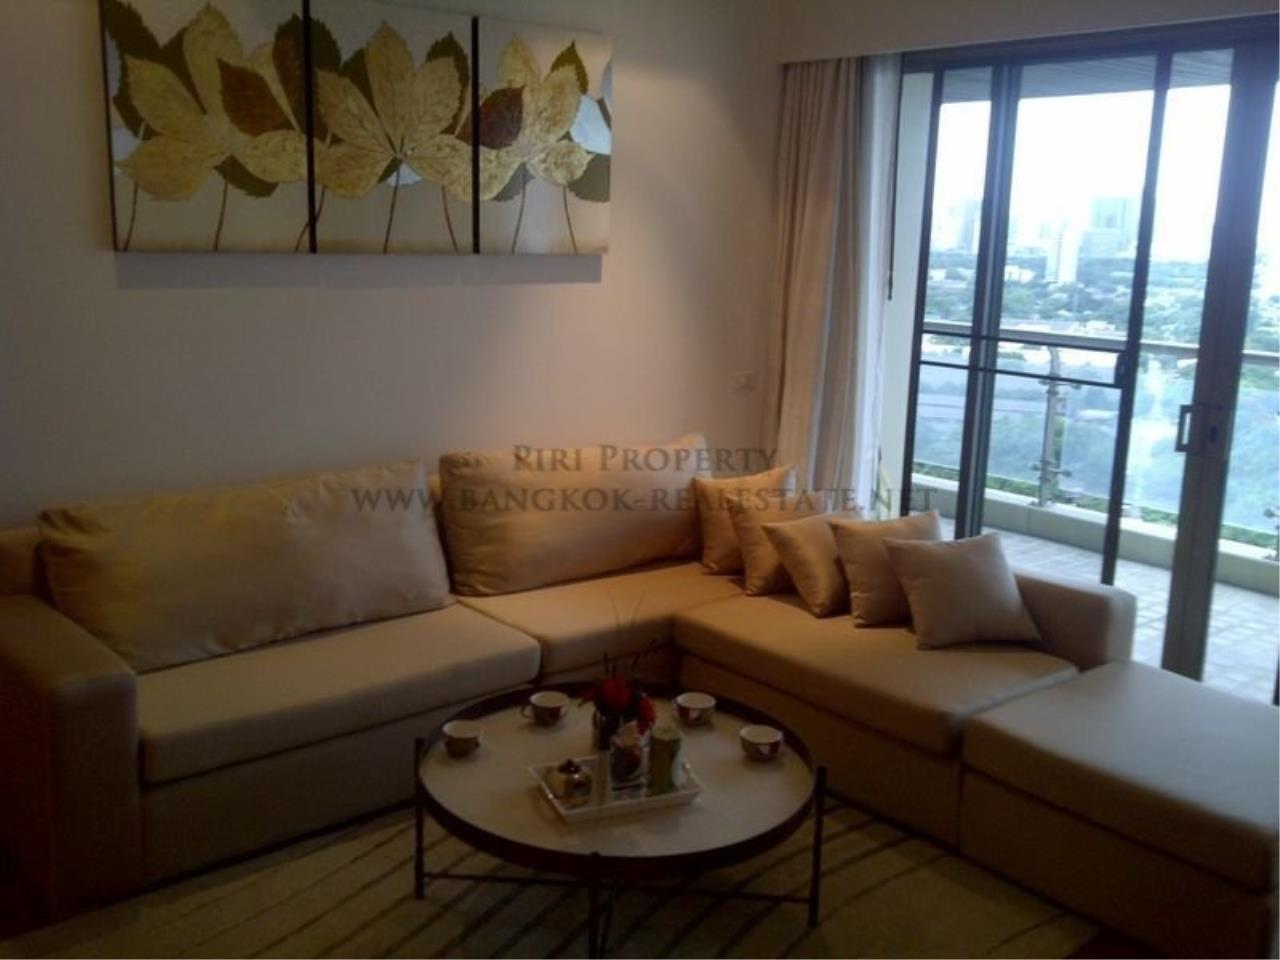 Piri Property Agency's 2 Bedroom Condo in The Lakes building for Rent - High Floor 2